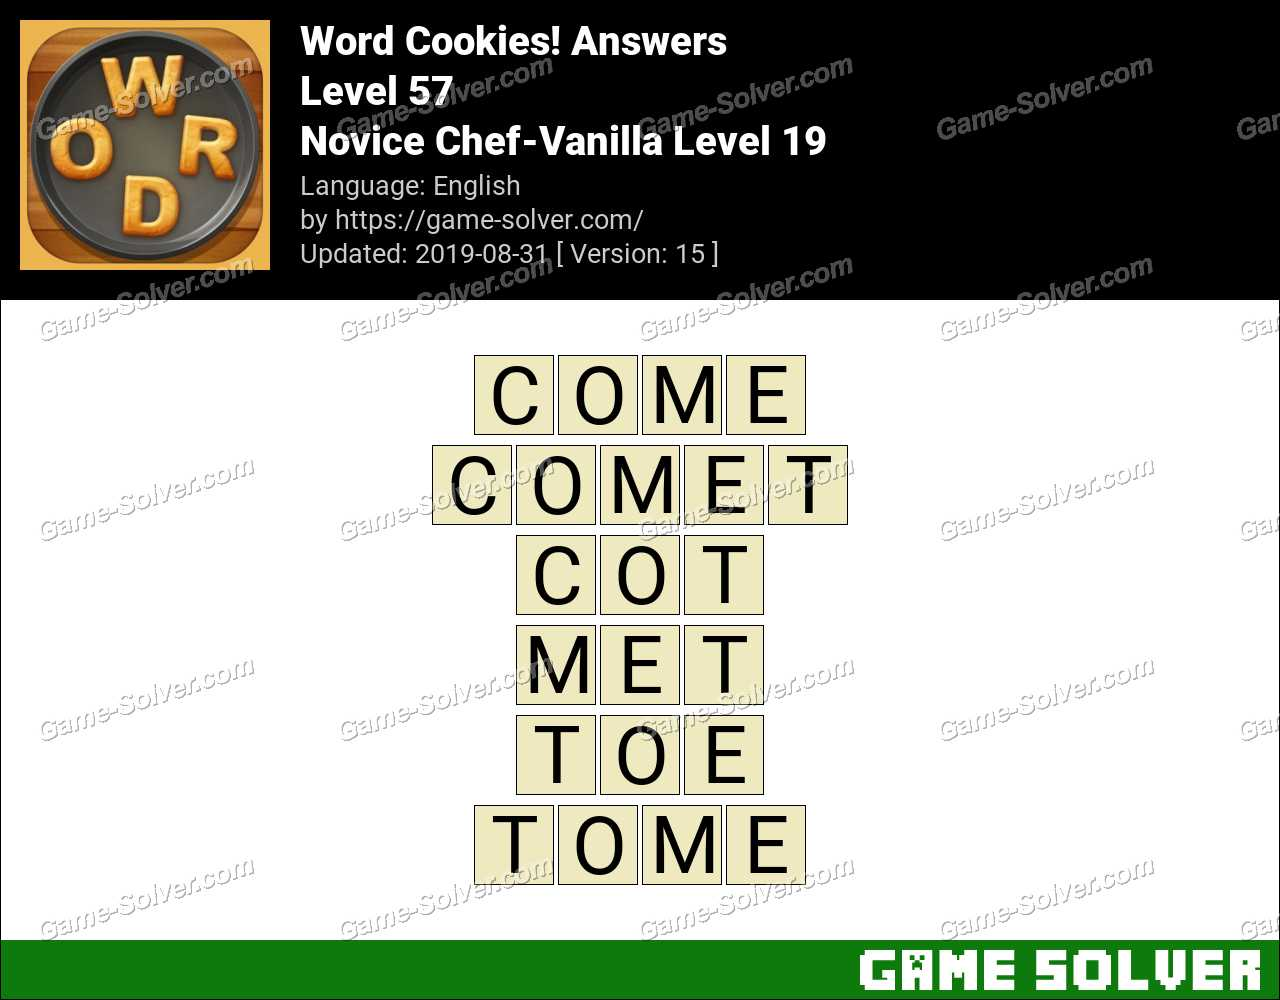 Word Cookies Novice Chef-Vanilla Level 19 Answers